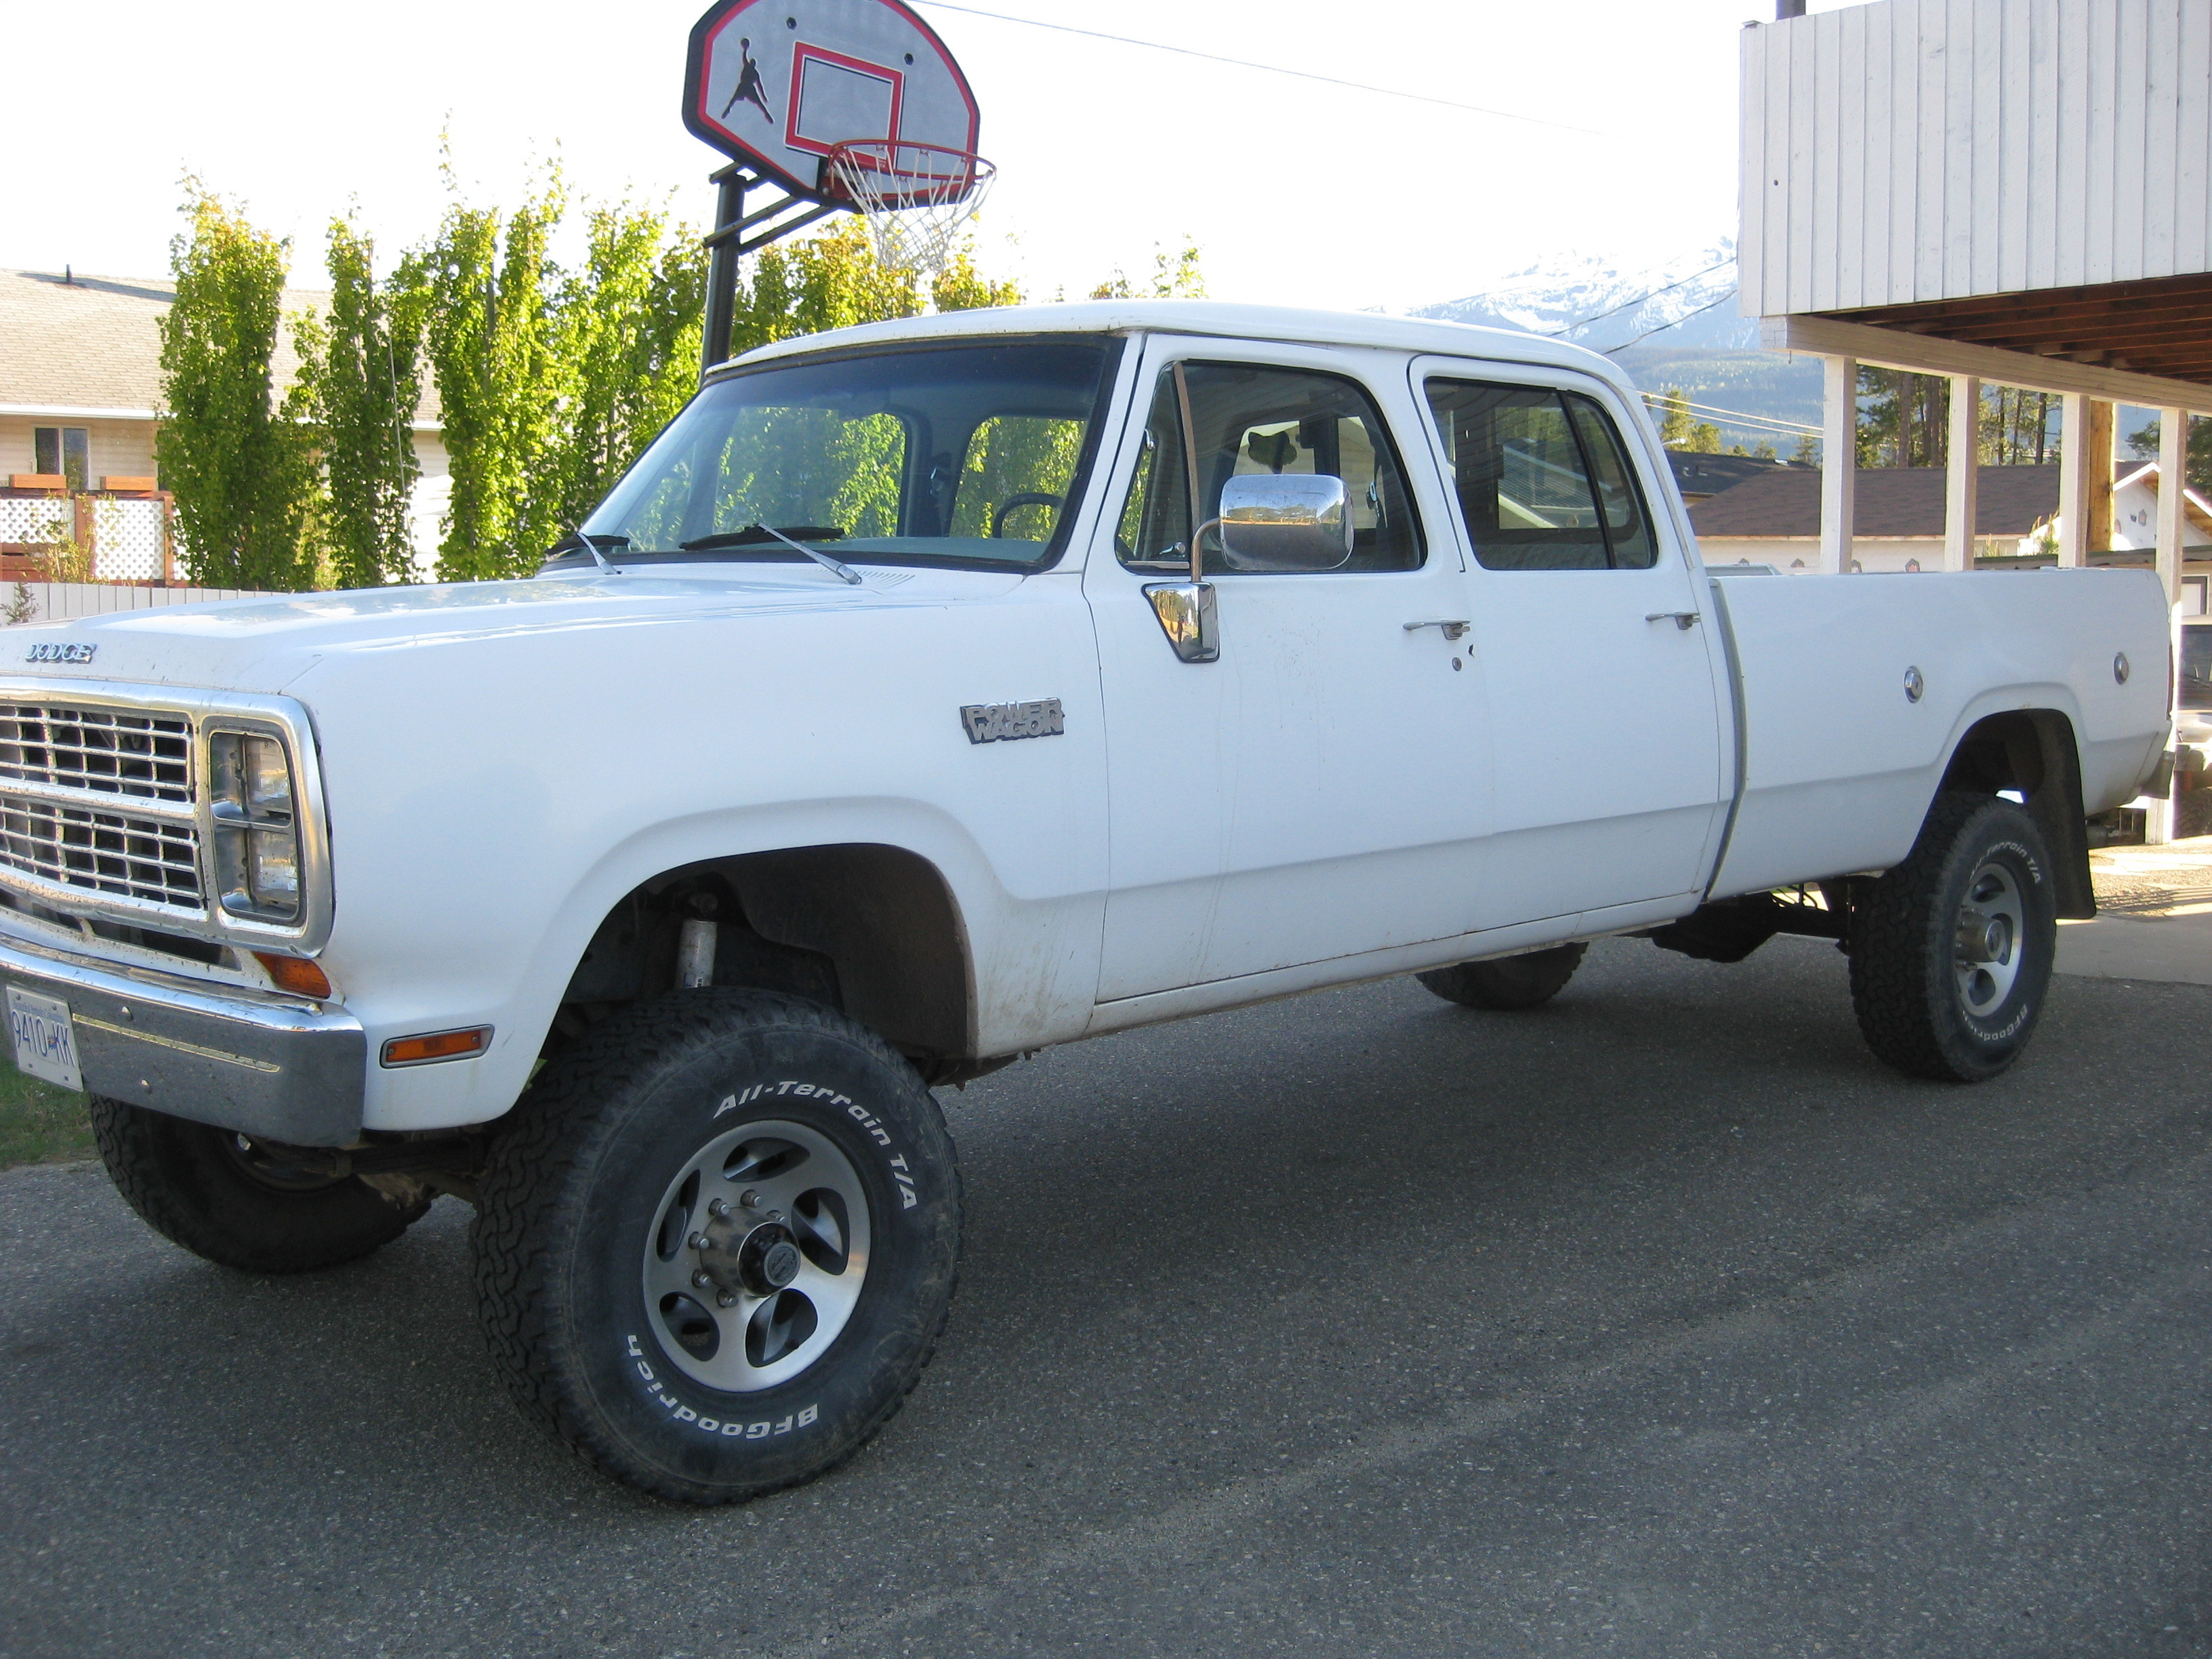 Original on 1979 Dodge Power Wagon